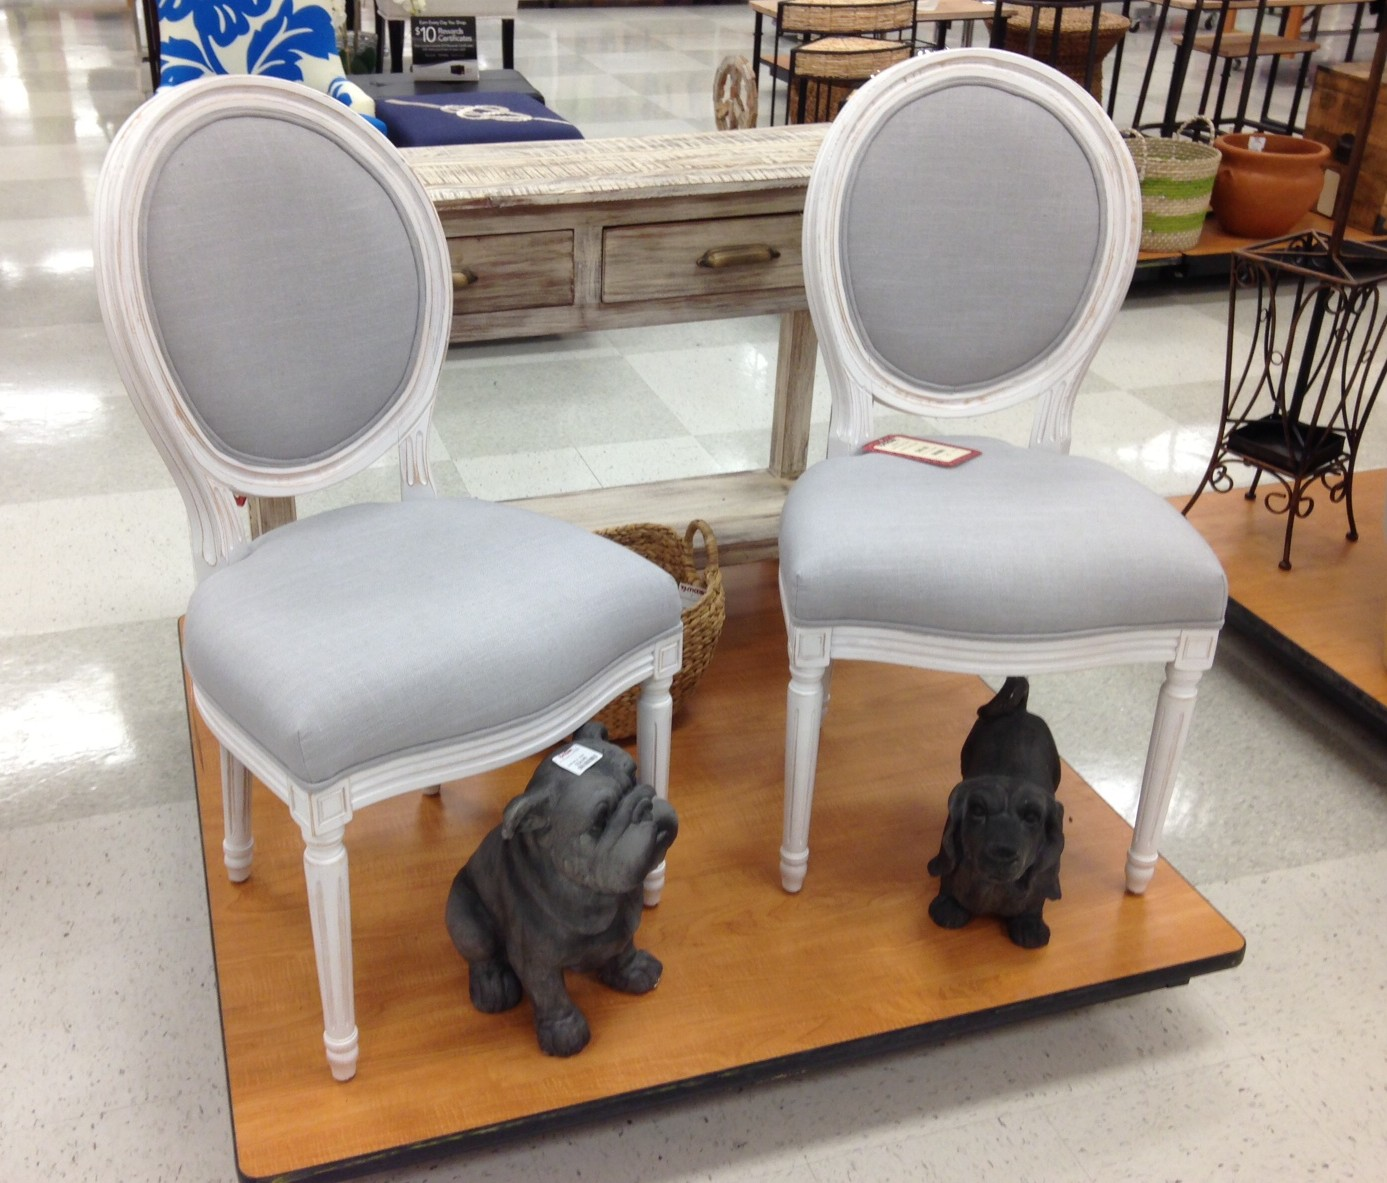 TJ Maxx Furniture: Best Selection to Your Home Interior ...